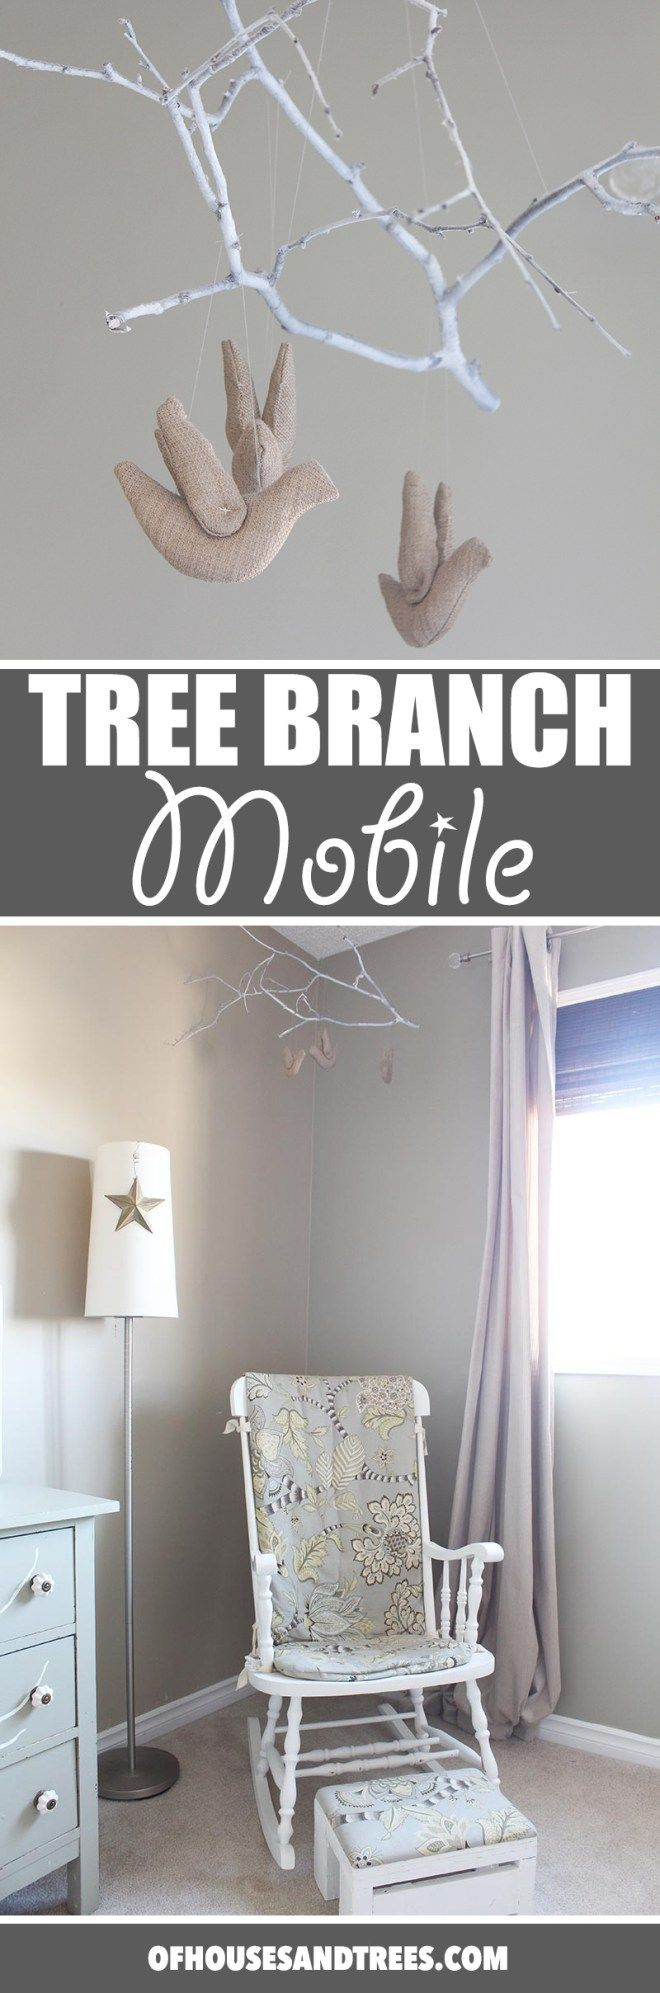 Tree Branch Mobile | Super charming and whimsical DIY tree branch mobile made with a spray-painted poplar branch, stuffed birds and fishing line.